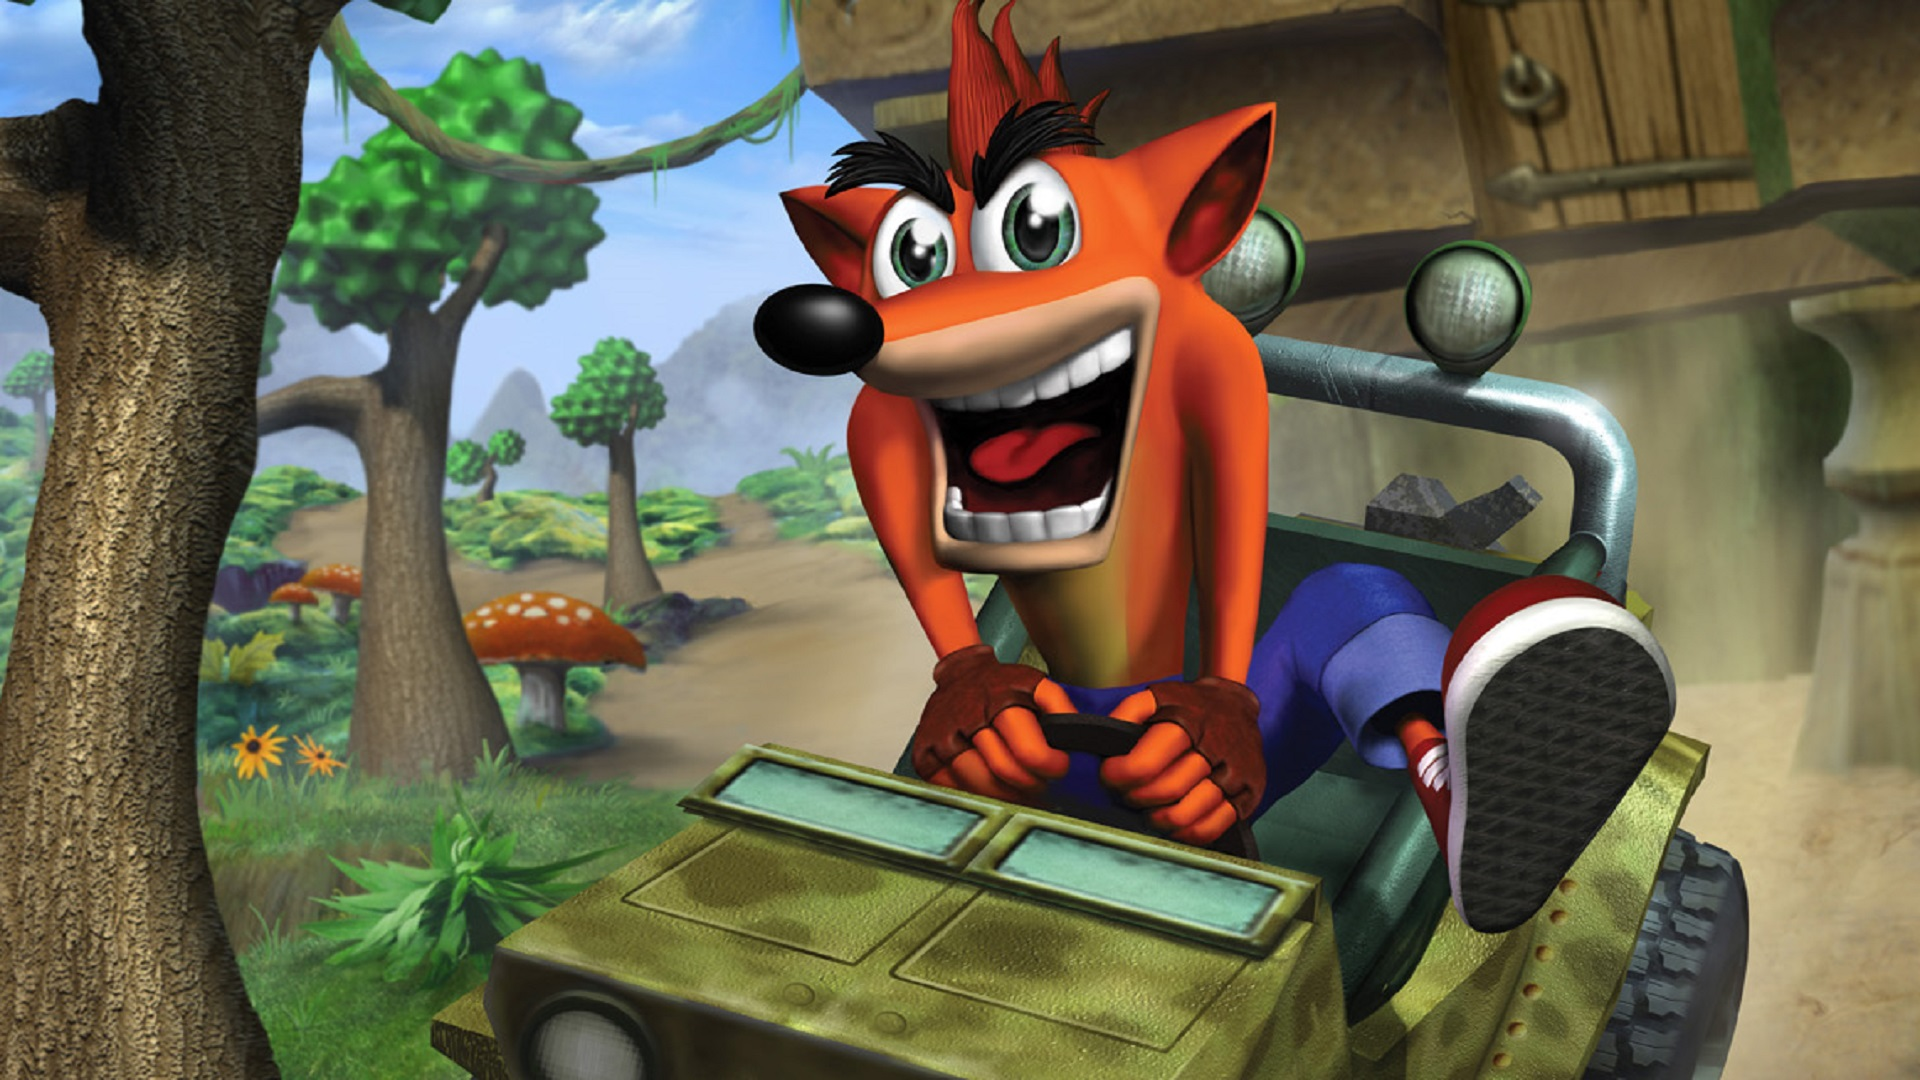 Crash Bandicoot: The Wrath of Cortex HD Wallpaper | Background Image